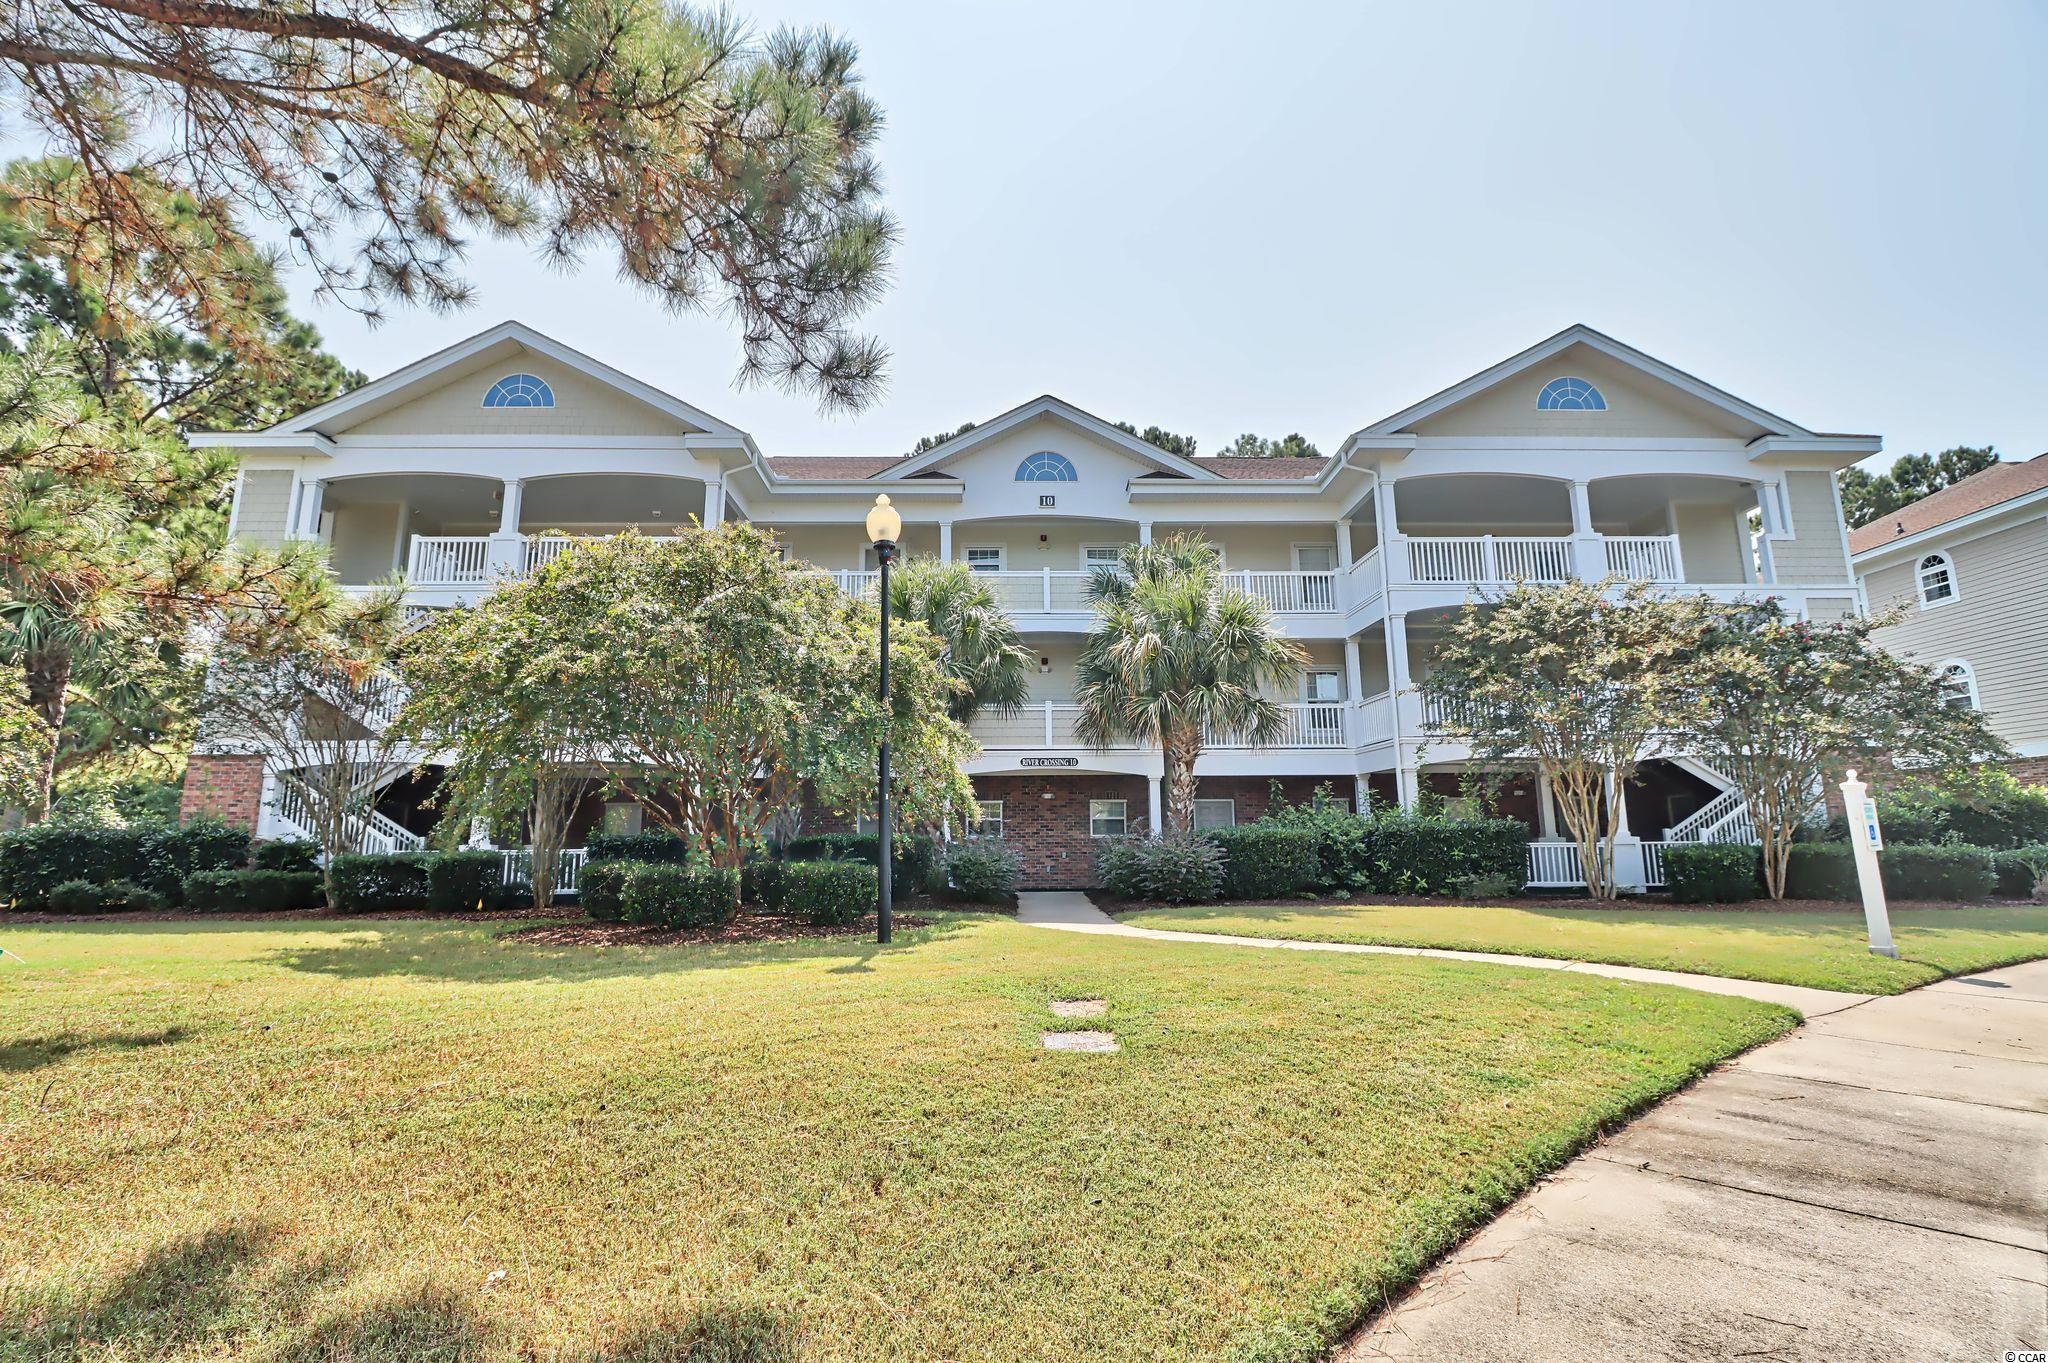 1st FLOOR END UNIT condo located in the gated community of River Crossing at Barefoot Resort, just three miles to the beautiful beach and Atlantic Ocean! Lovely 2BR/2BA with lots of natural light and a cozy screened patio with tile floor and attached storage closet to house all of your beach gear.  Never rented, the seller has used this unit as a second home only.  Both the HVAC and hot water heater were replaced in 2018.  New refrigerator installed August 2021.  Come and enjoy the Barefoot lifestyle. Low HOA fees include all utilities except, electric in the unit and HO6 insurance (interior). Amenities include multiple pools, designated parking lots at the beach and use of a brand new beach front cabana, currently being built.  Barefoot is also home to four championship golf courses, driving range, plus two restaurants/bars. Why not make it your home as well!!